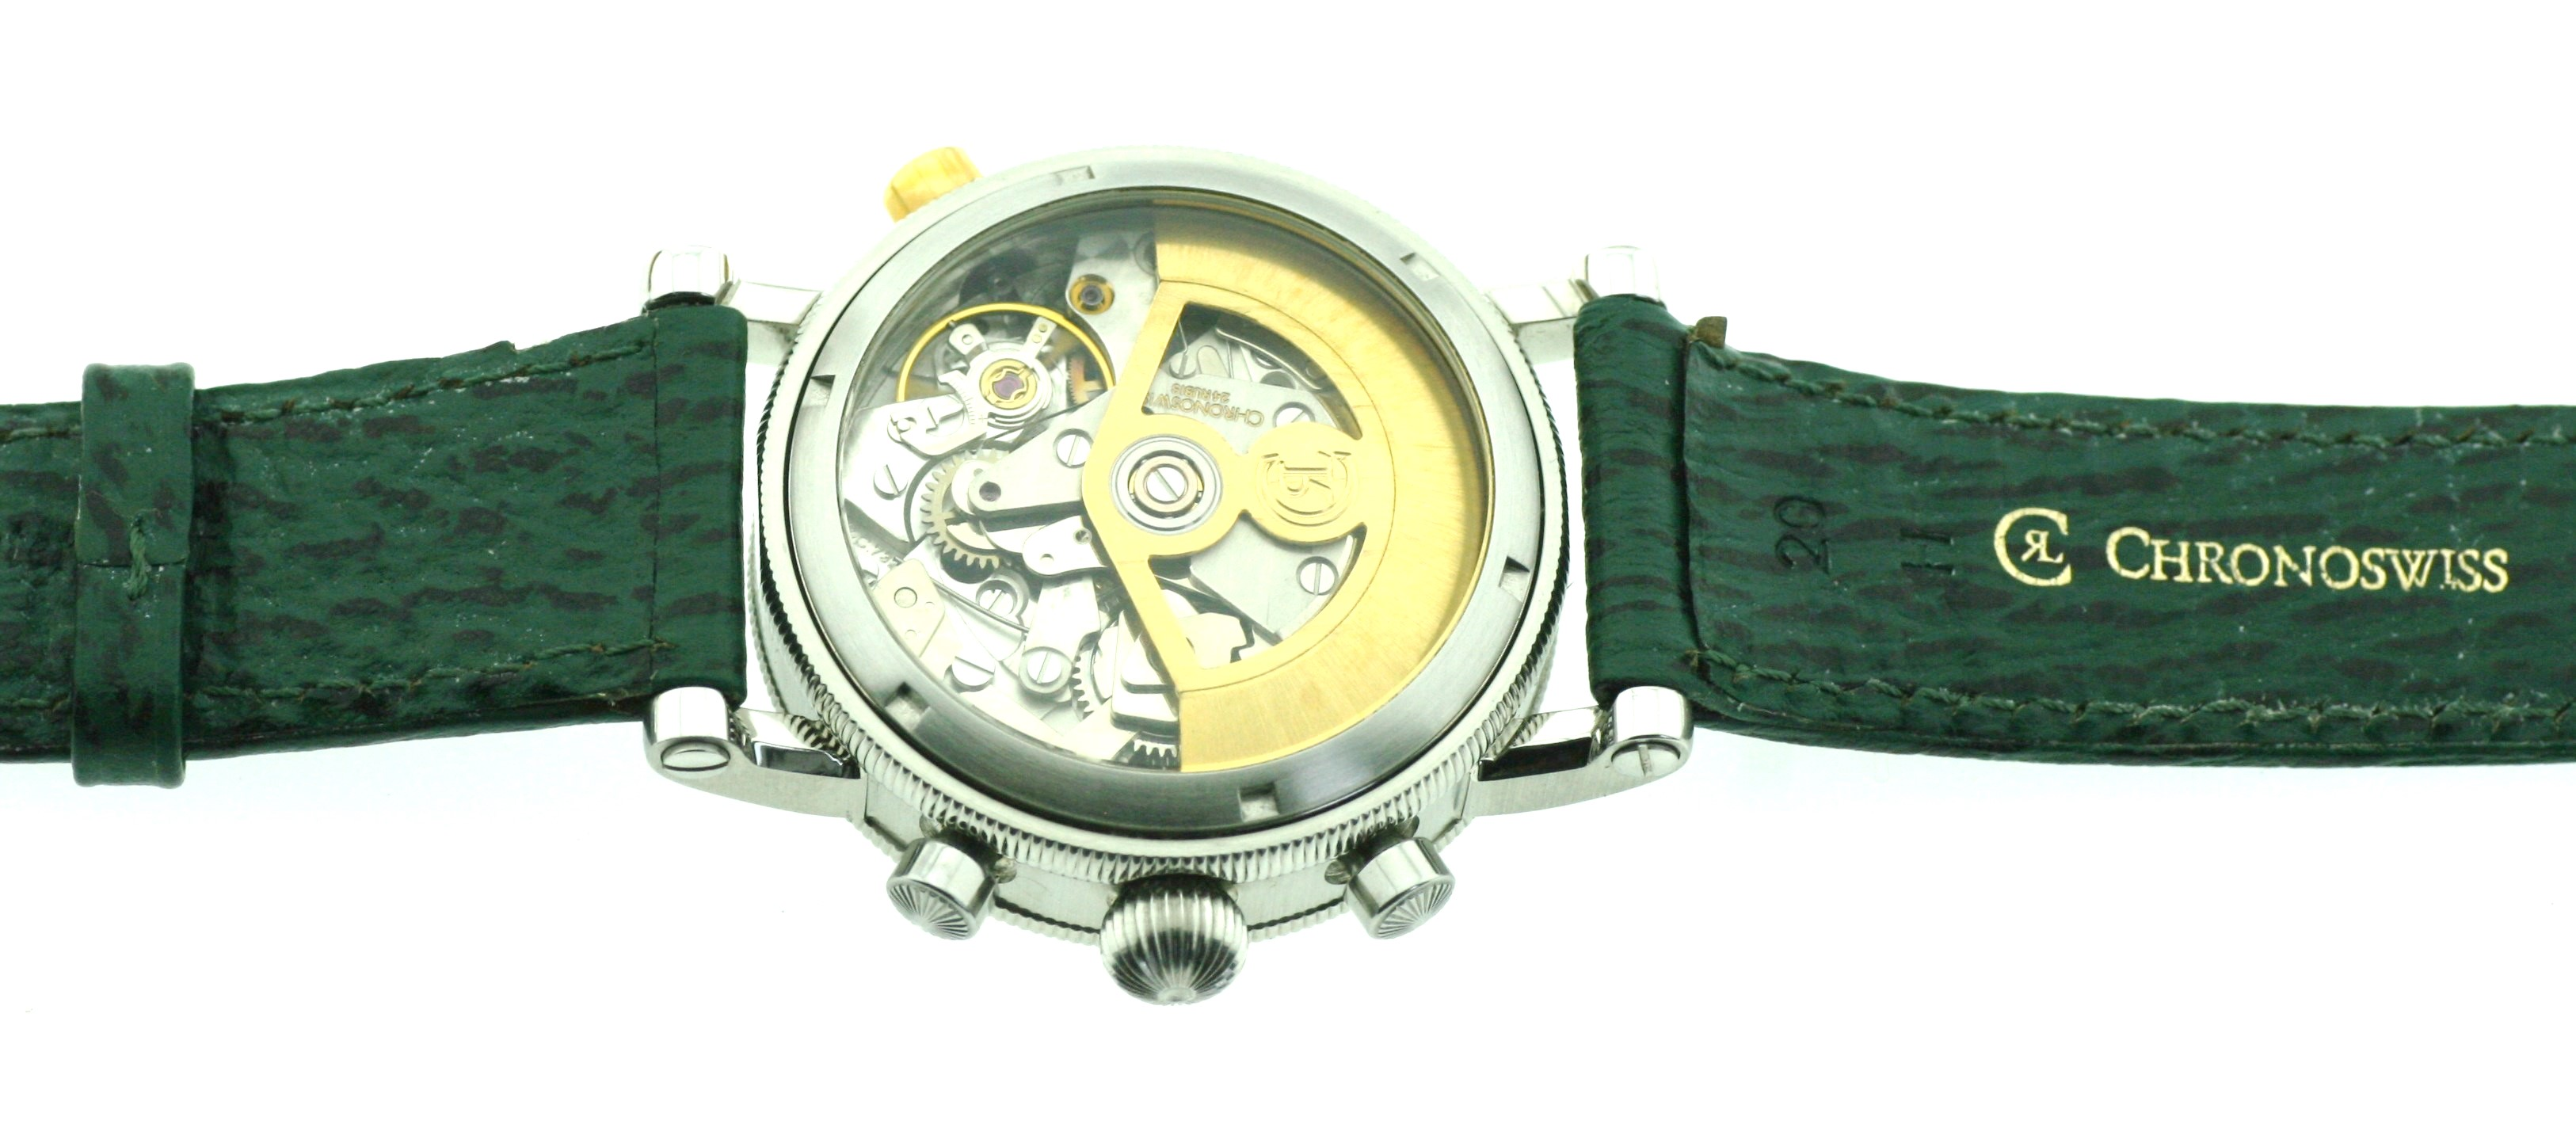 watch movement calatrava s watches automatic pin first patek philippe at caliber ref